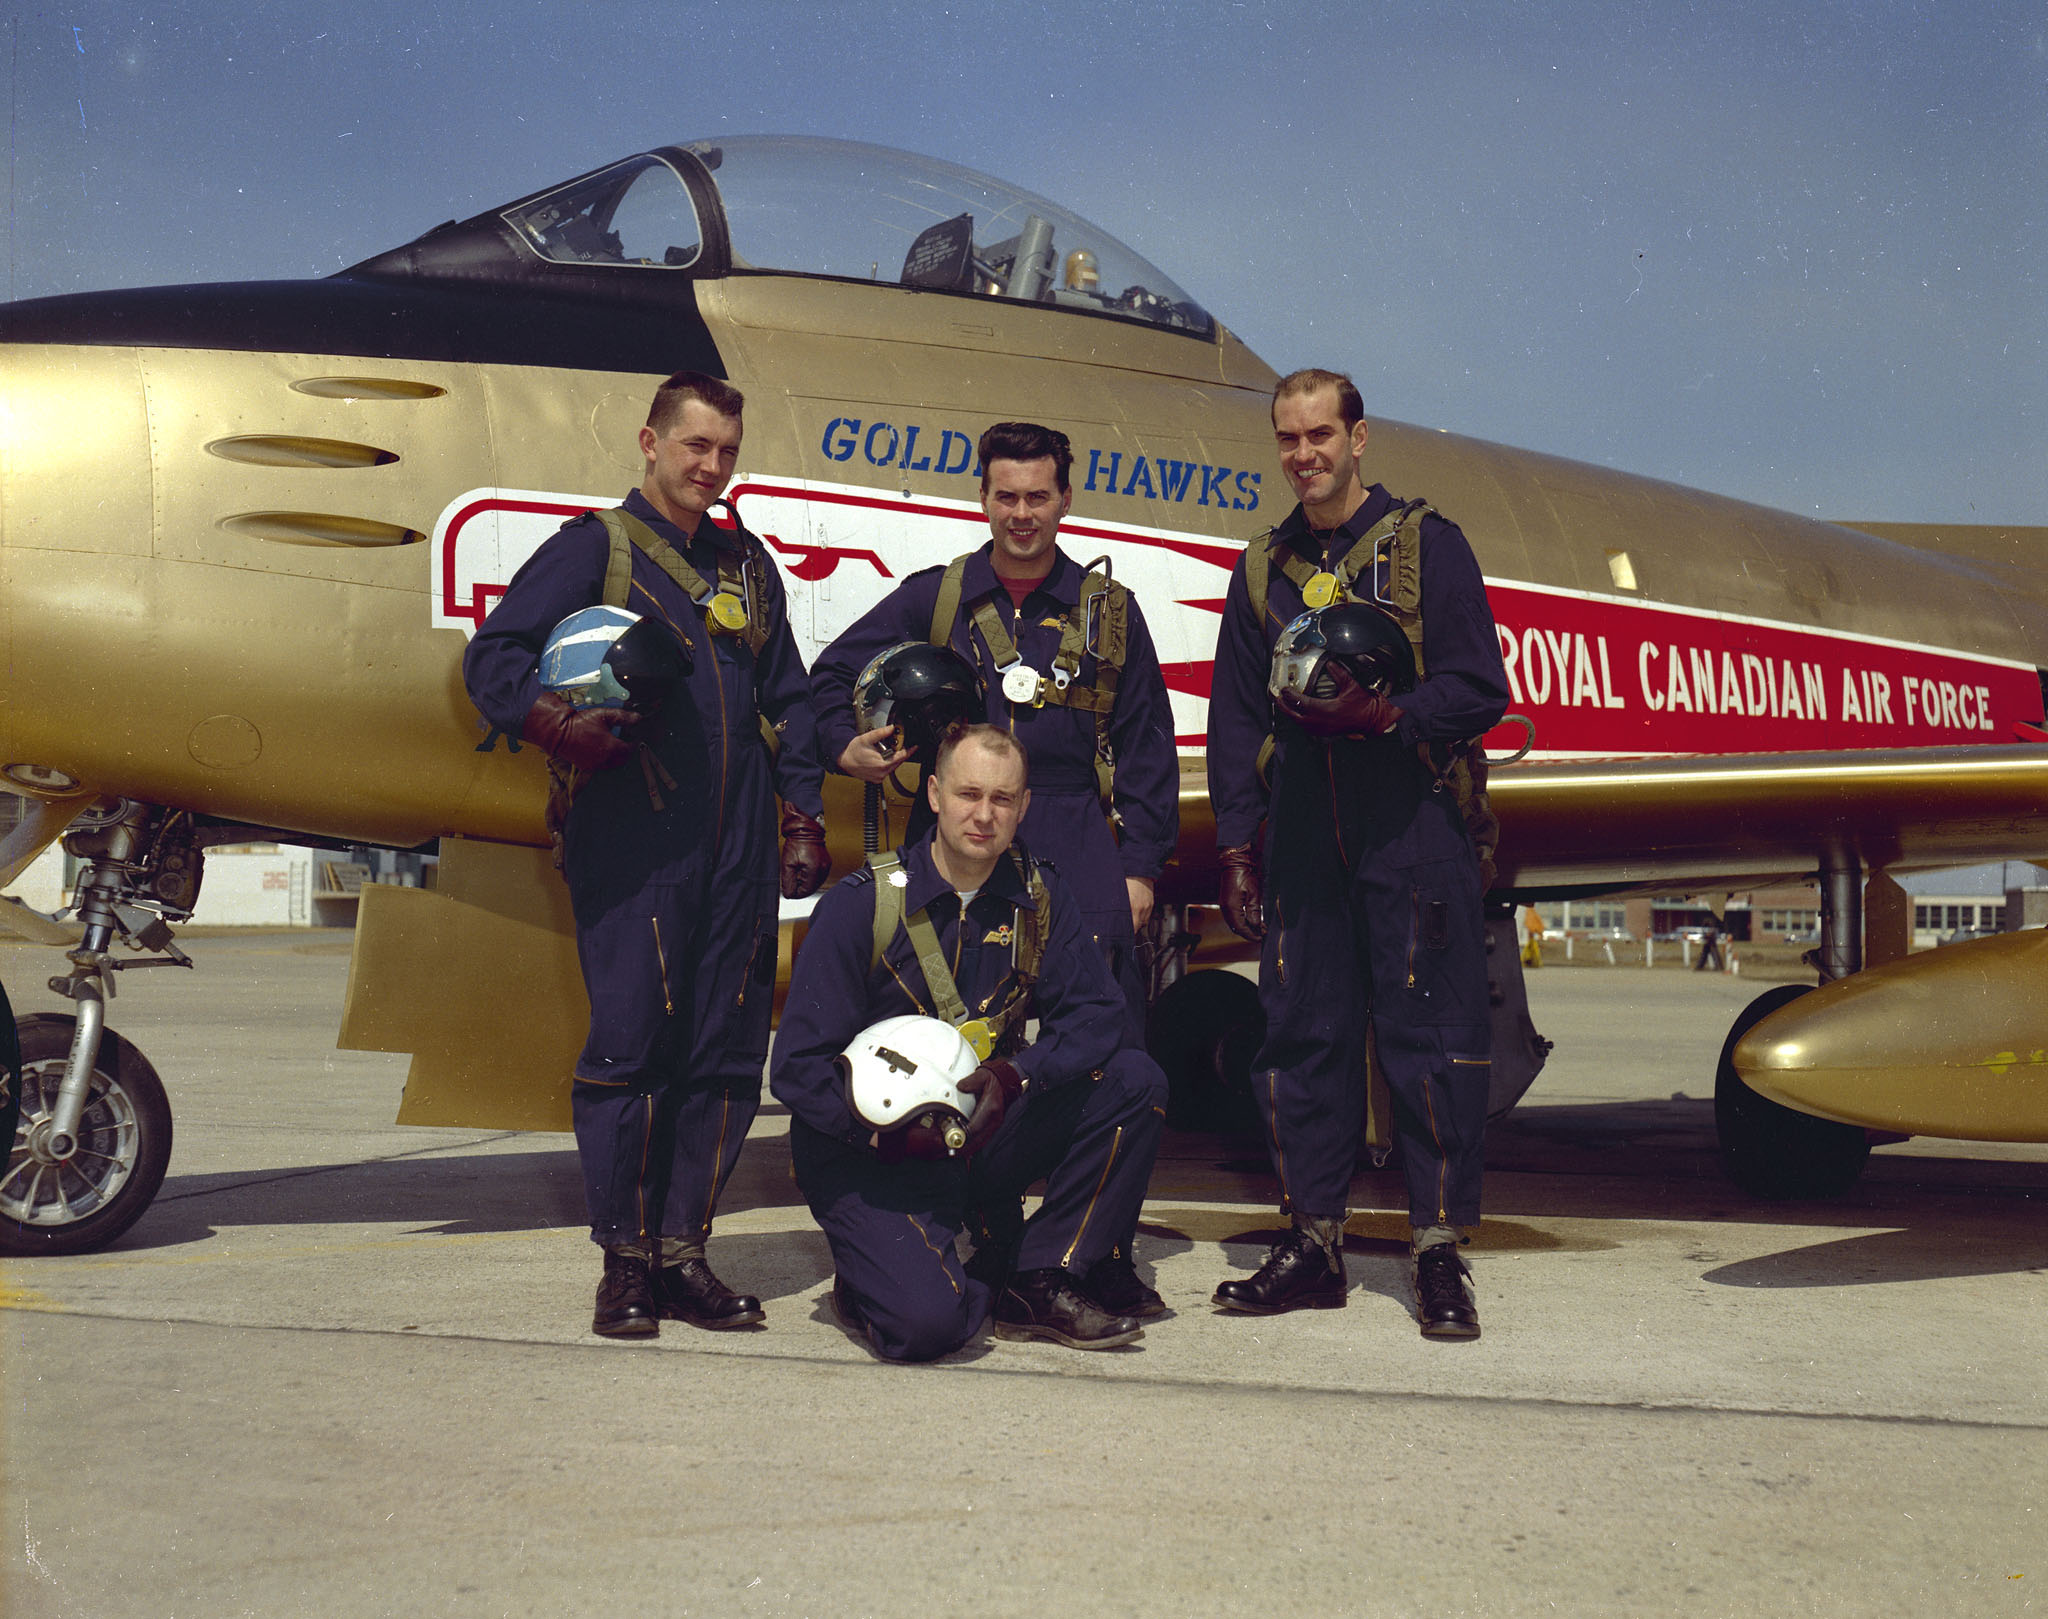 Les membres de l'équipe de voltige de l'ARC, les Golden Hawks : le capitaine d'aviation Jim D. McCombe (à gauche), le capitaine d'aviation G. Jeb Kerr (au centre), le capitaine d'aviation Ed J. Rozdeba et le commandant d'aviation Fern G. Villeneuve (agenouillé). PHOTO : Archives du ministère de la Défense nationale, PCN-126